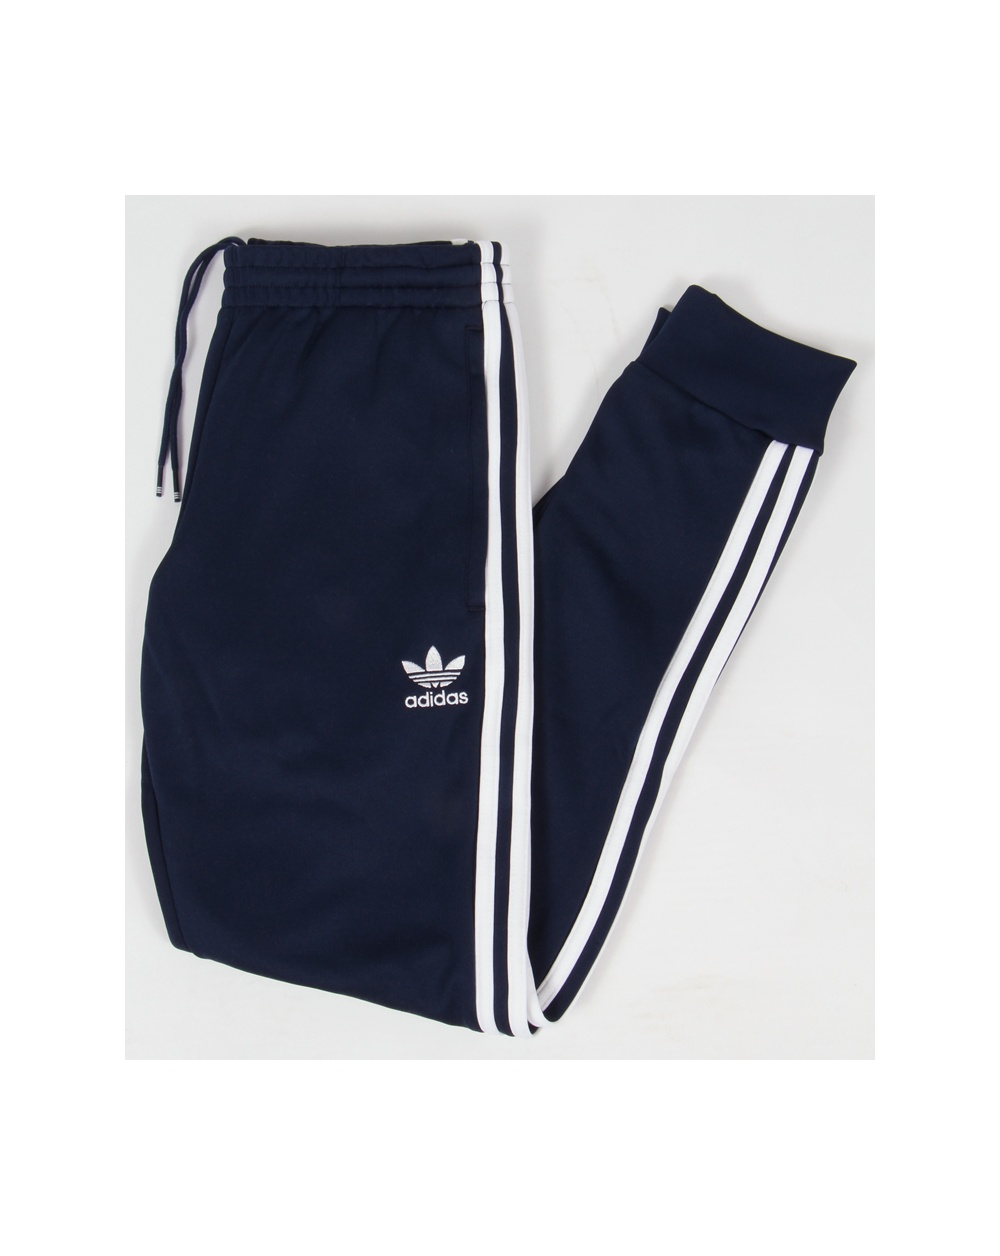 adidas originals superstar cuffed track pants black